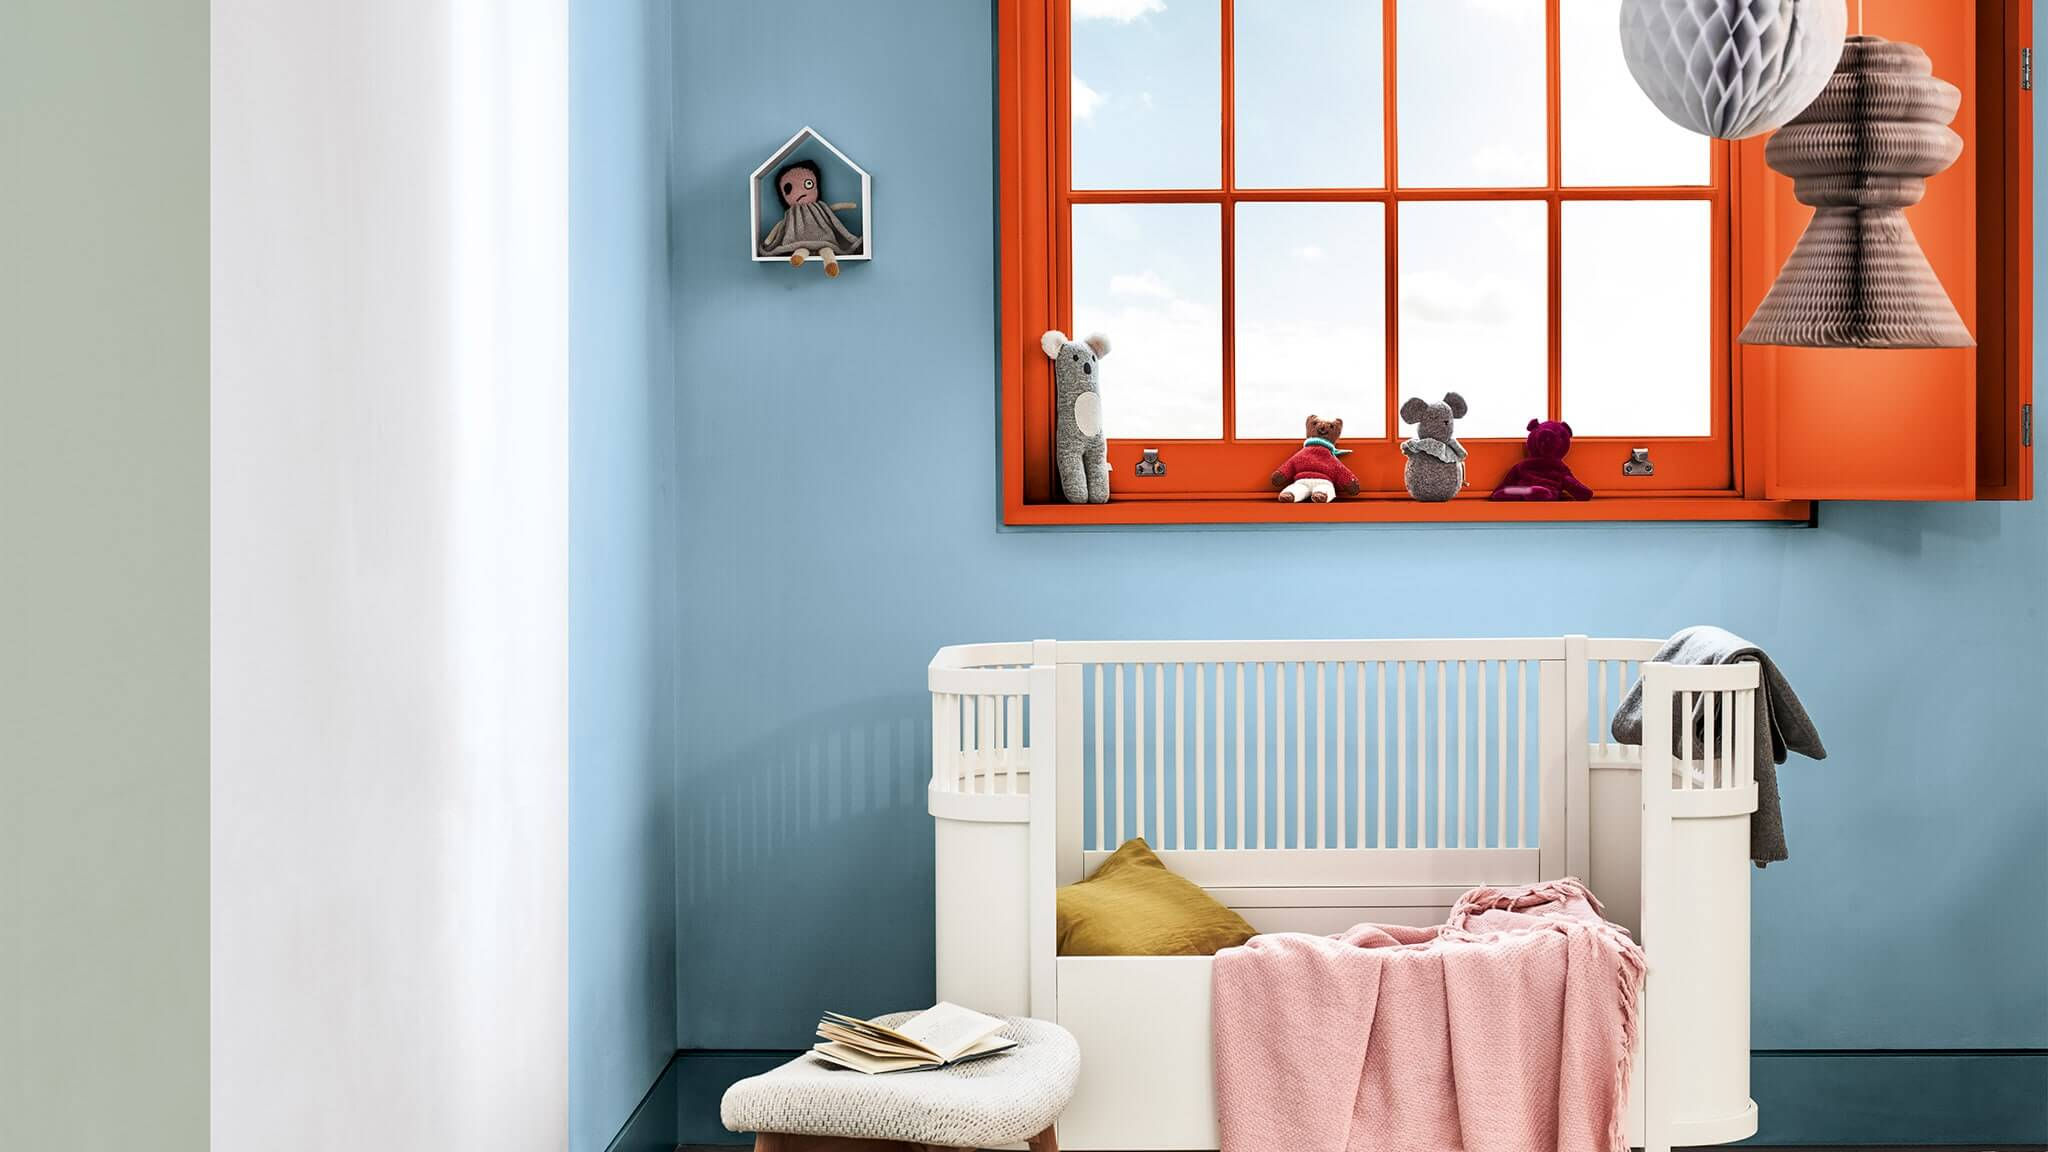 dulux-colour-futures-colour-of-the-year-2020-a-home-for-play-kidsroom-inspiration-thailand-52.jpg